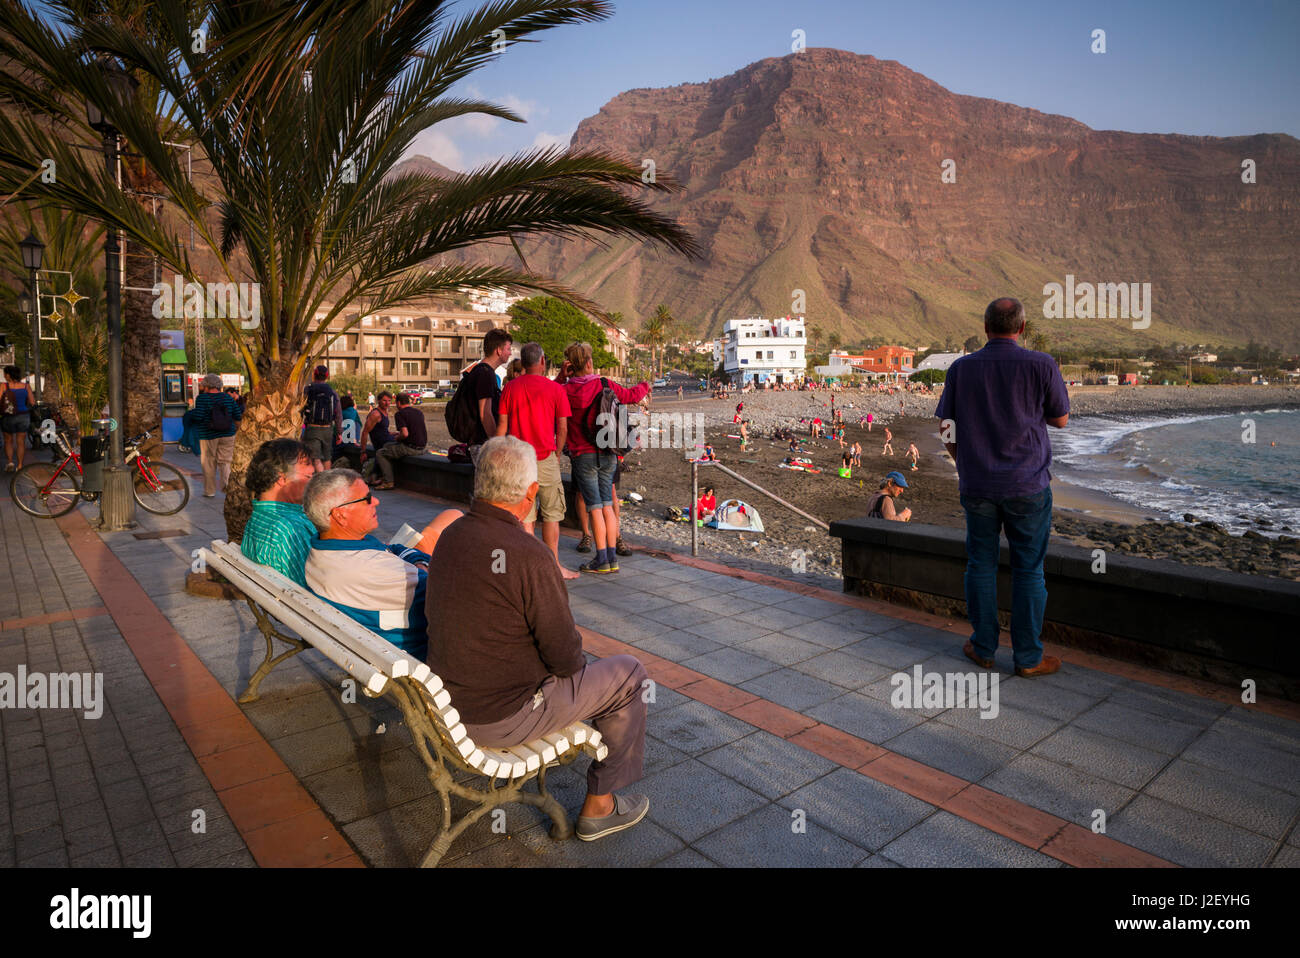 Spain, Canary Islands, La Gomera, Valle Gran Rey, visitors on the beachfront - Stock Image